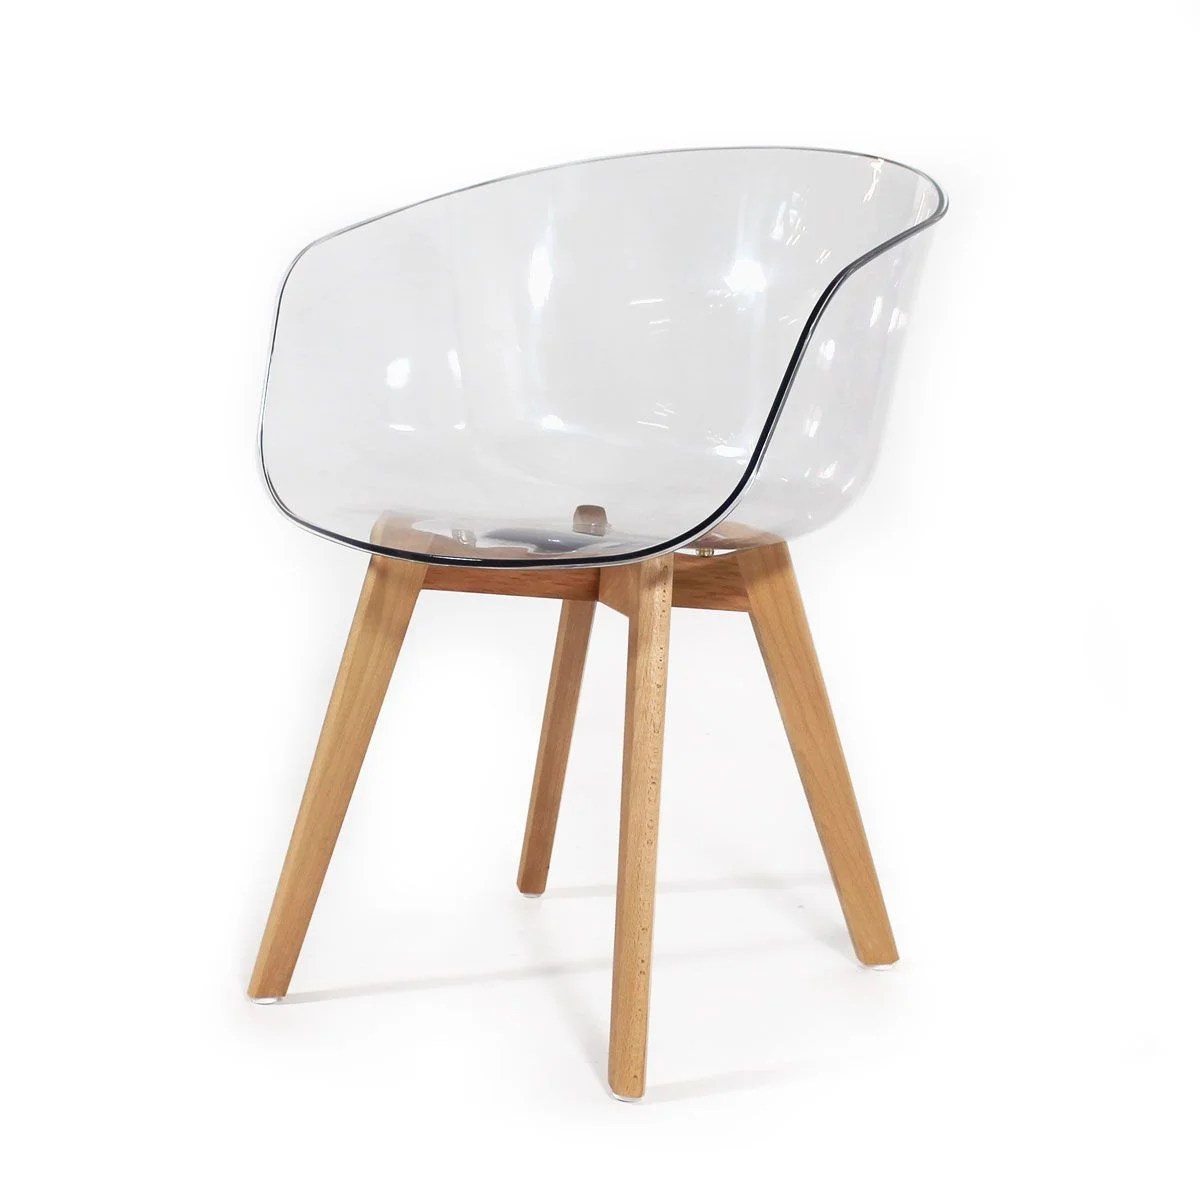 Affordable Made In Meubles Fauteuil Design En Plexi